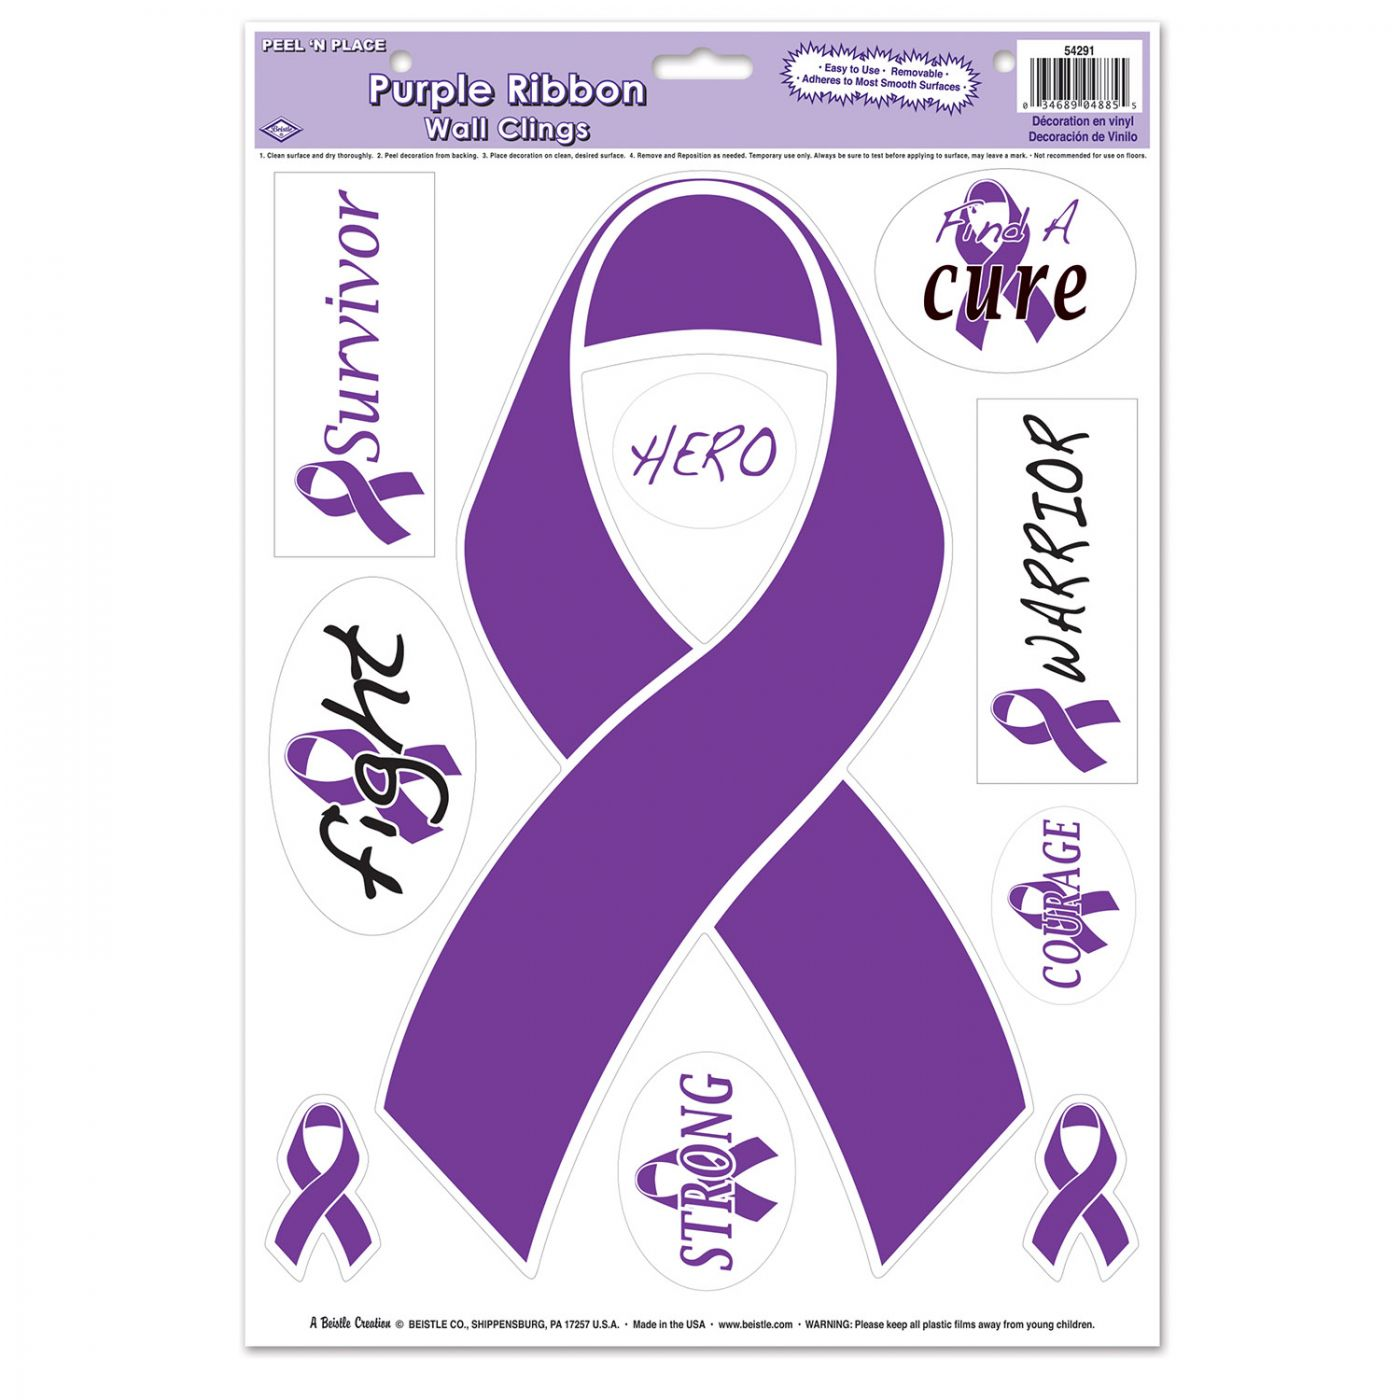 Purple Ribbon/Find A Cure Peel 'N Place image